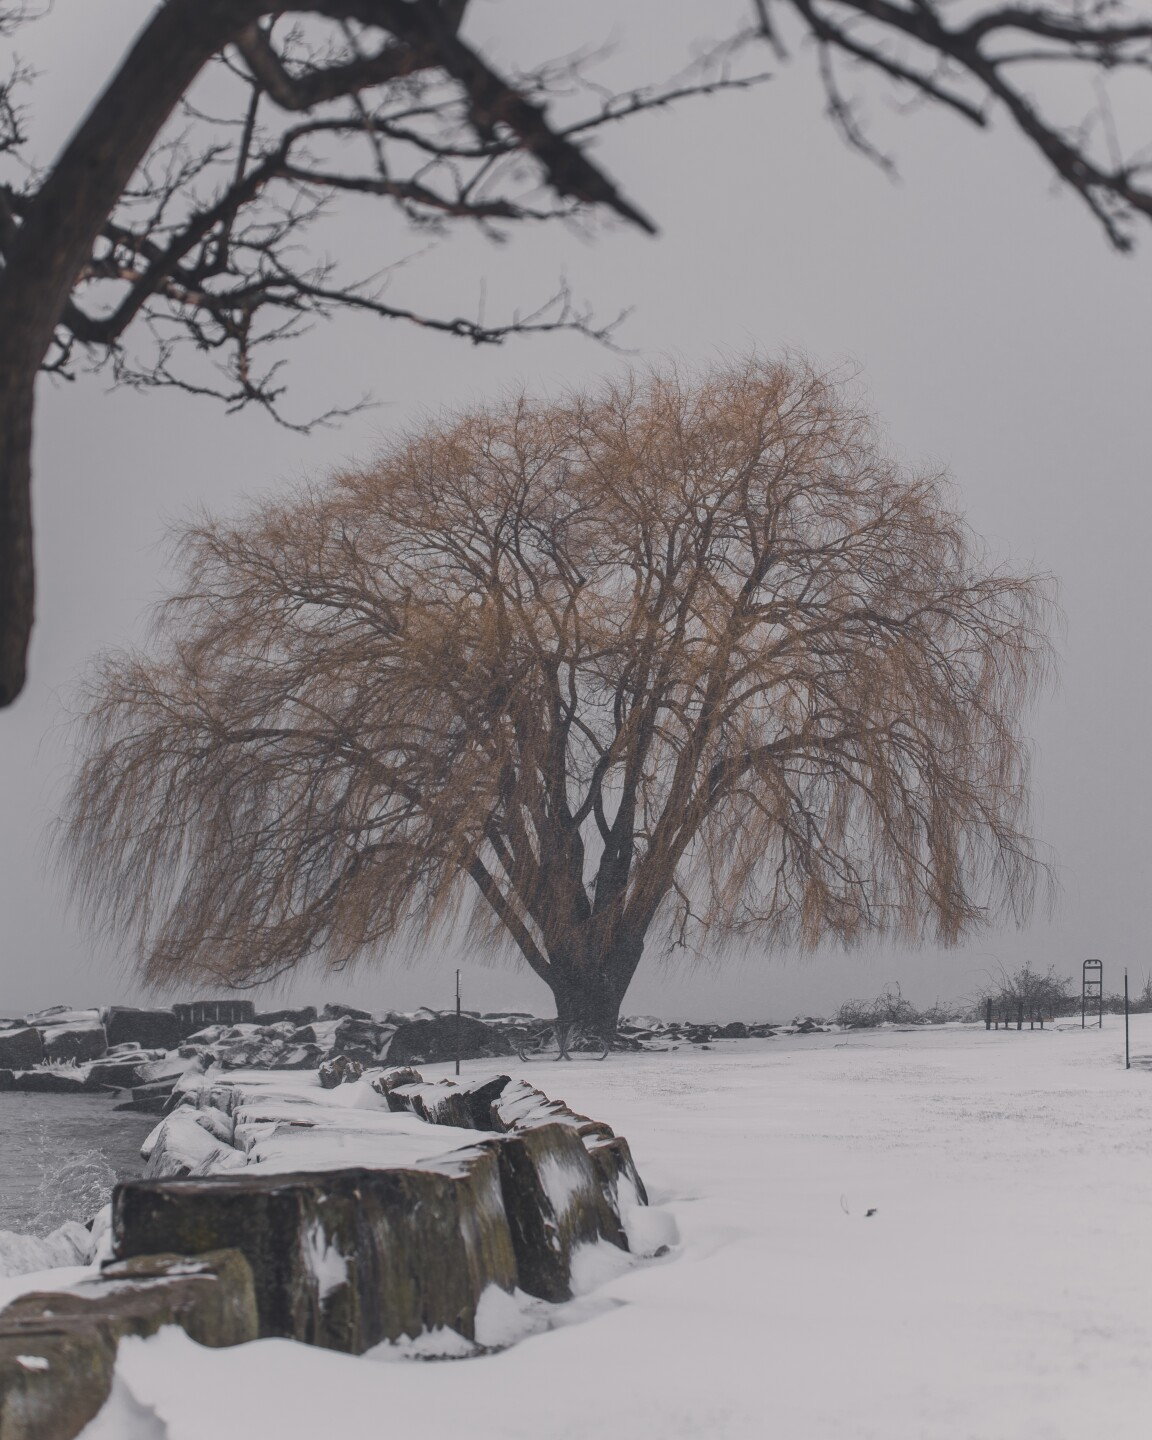 The Weeping Willow withstands harsh winter winds.